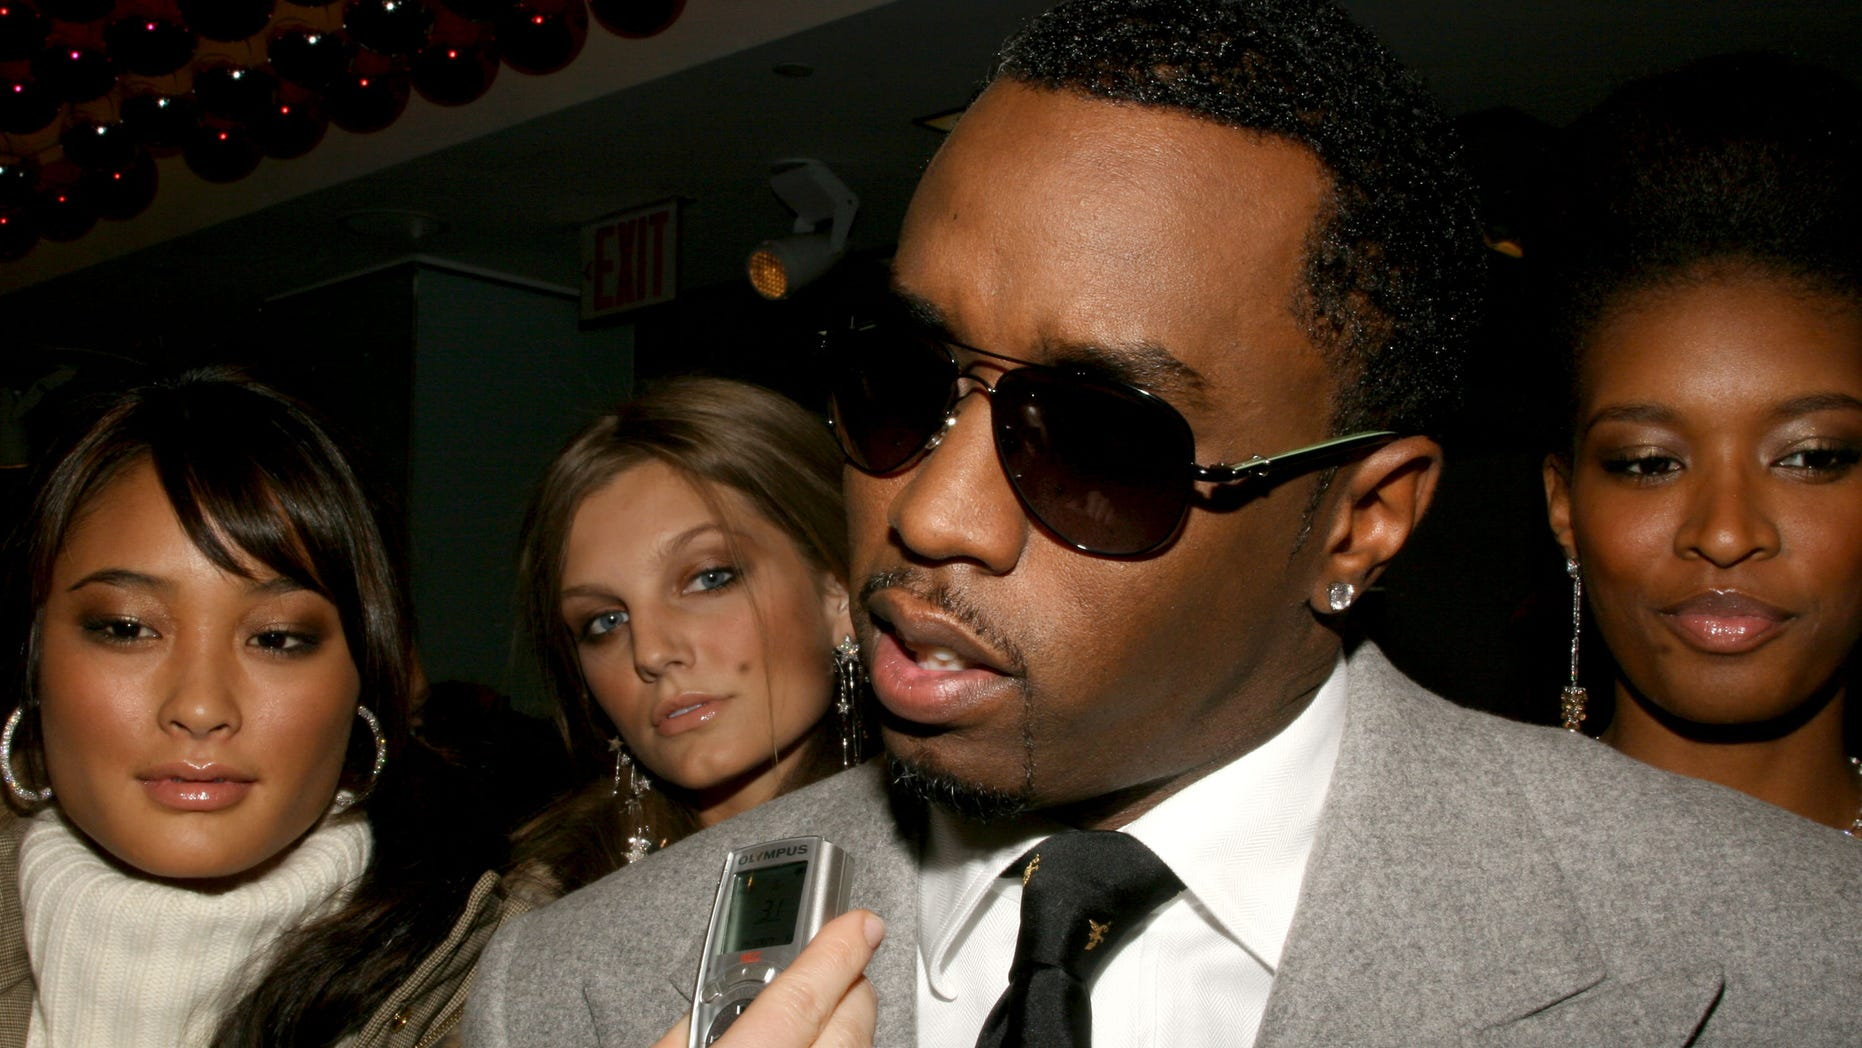 """P.Diddy's new book, """"Culo,"""" is about what else? Women's backsides."""